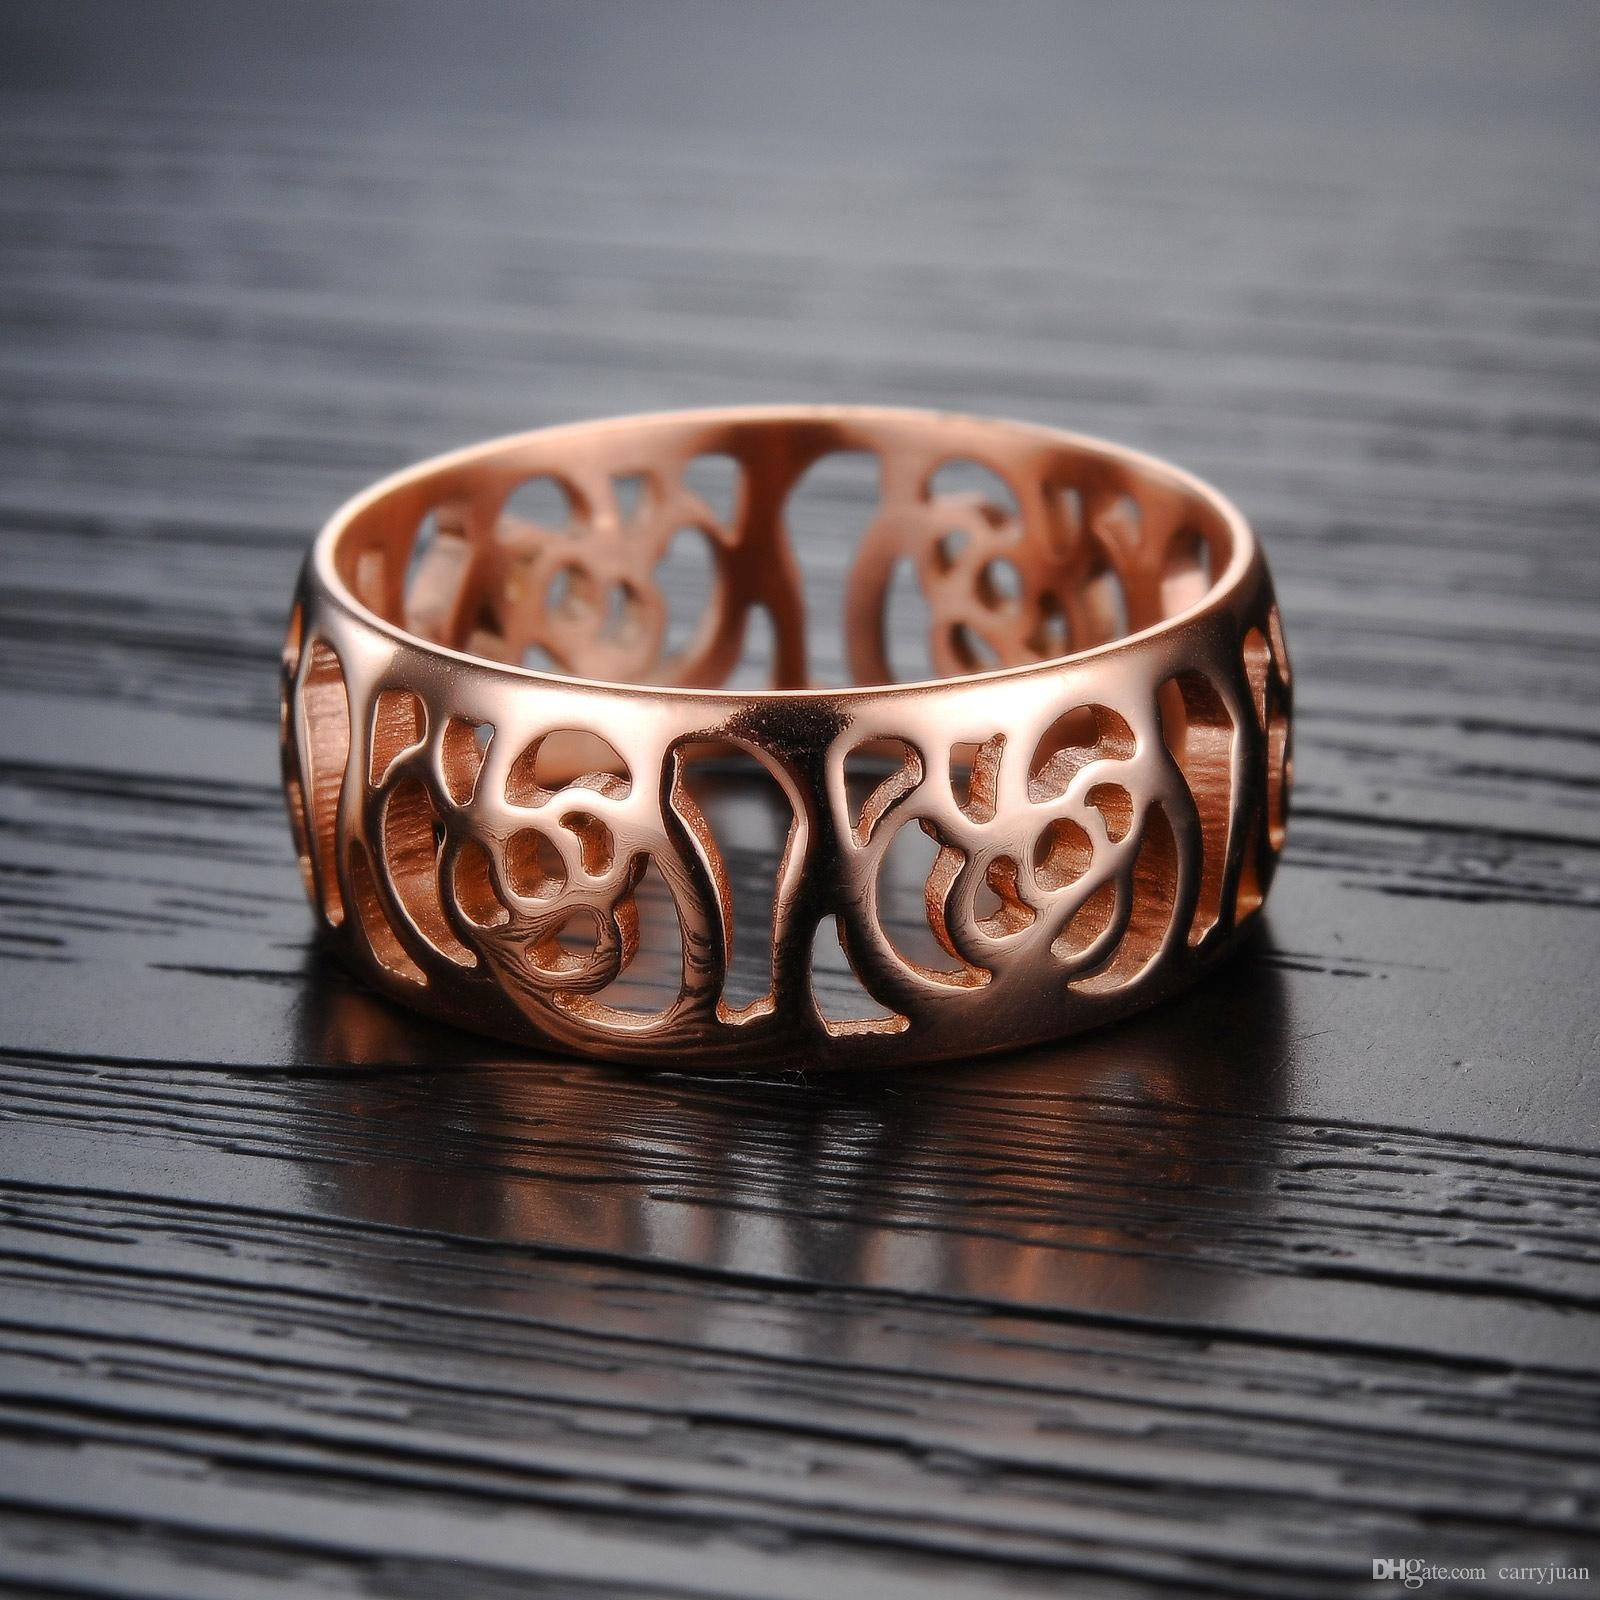 Victoria Wieck 2018 New Arrival Top Selling Fashion Jewelry Stainlesss Steel Rose Gold Filled Party Women Wedding Band Camellia Ring Gift